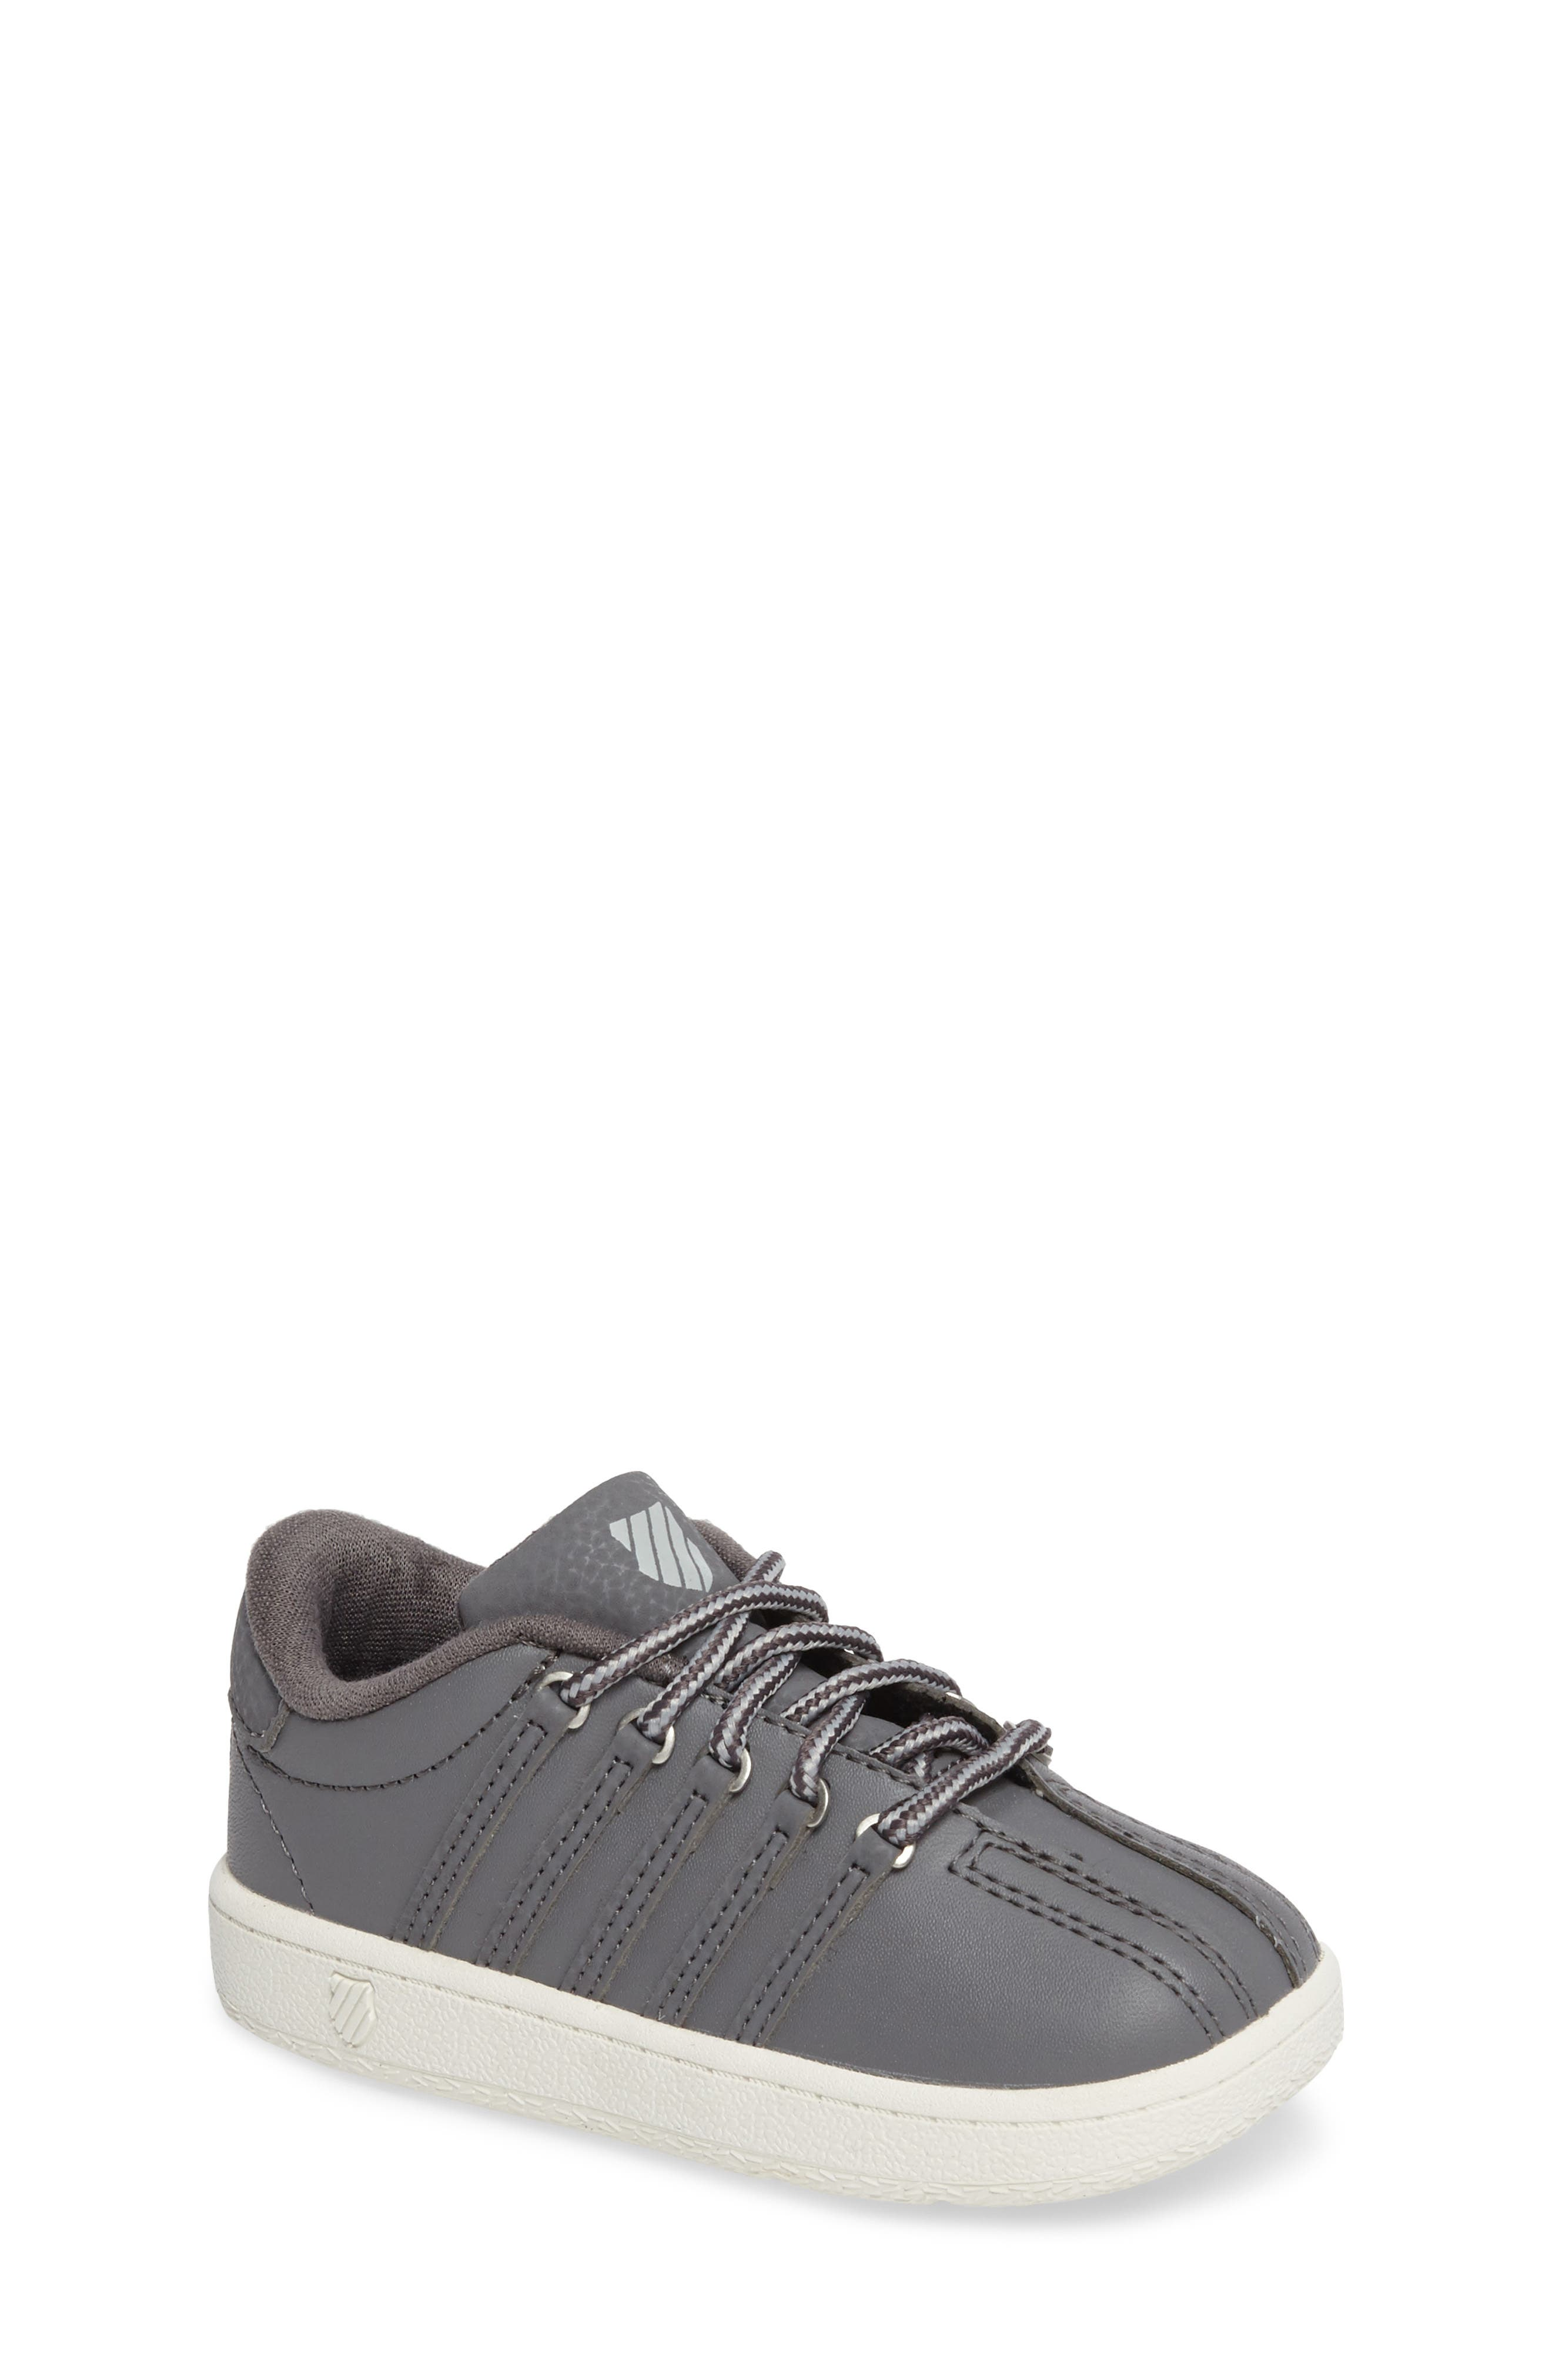 Classic VN Sneaker,                         Main,                         color, 075